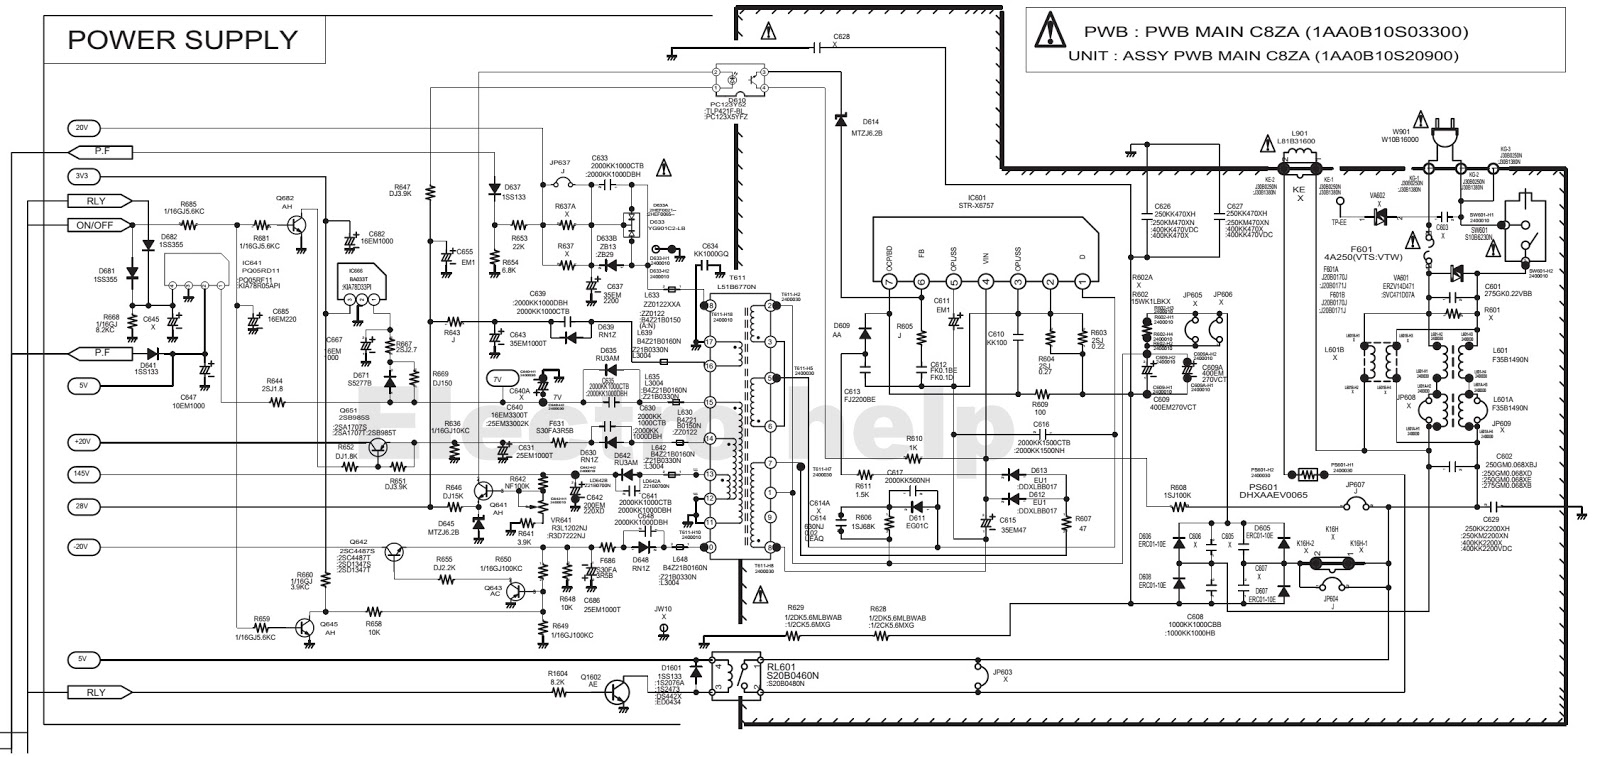 smps Crt Tv Schematic Diagram Pdf on power supply, circuit board, sanyo crt,